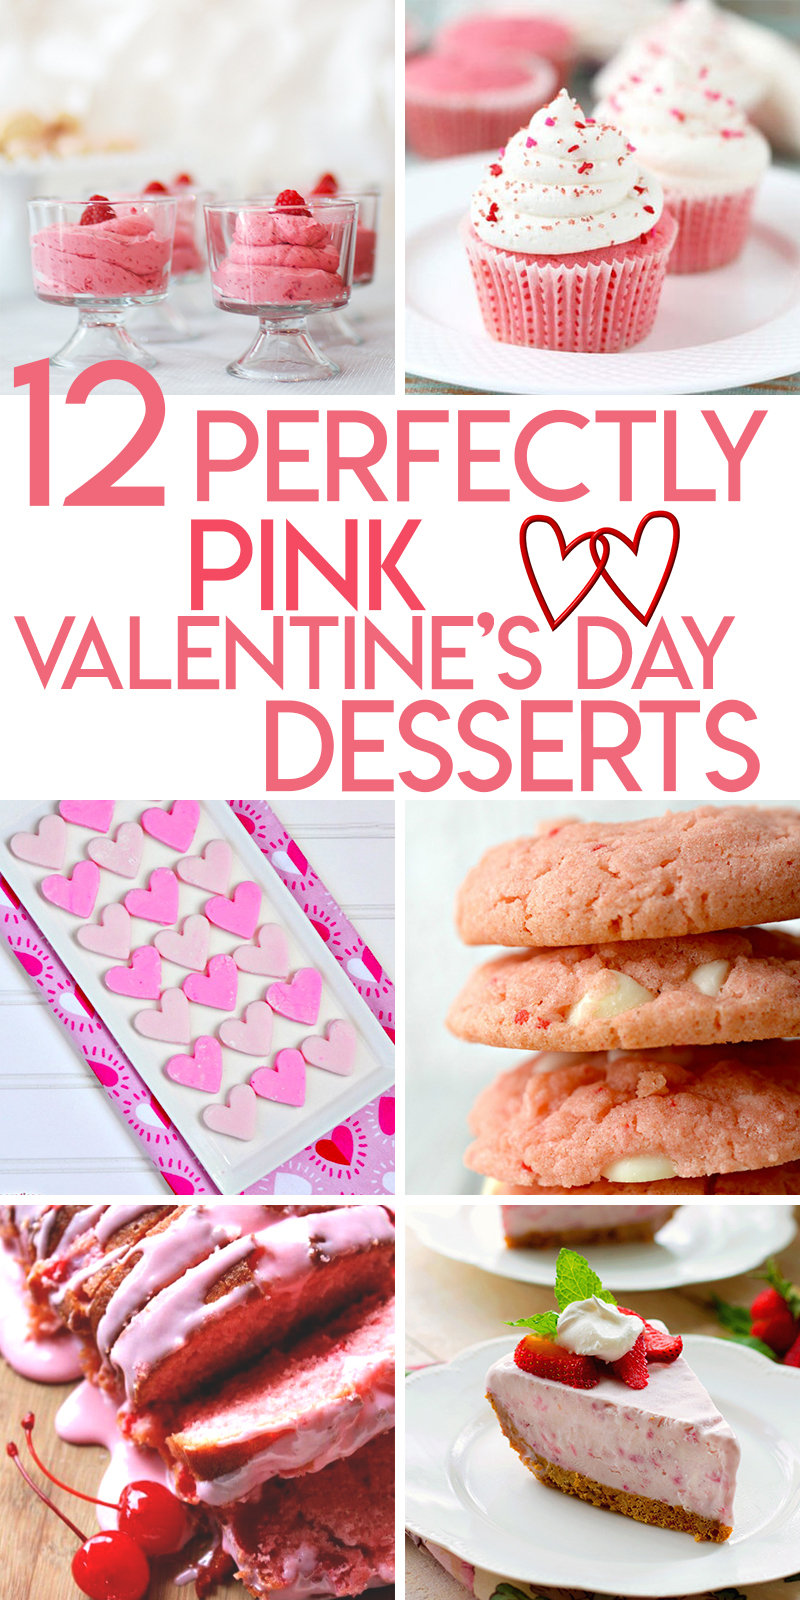 12 perfectly pink dessert recipes for Valentine's day